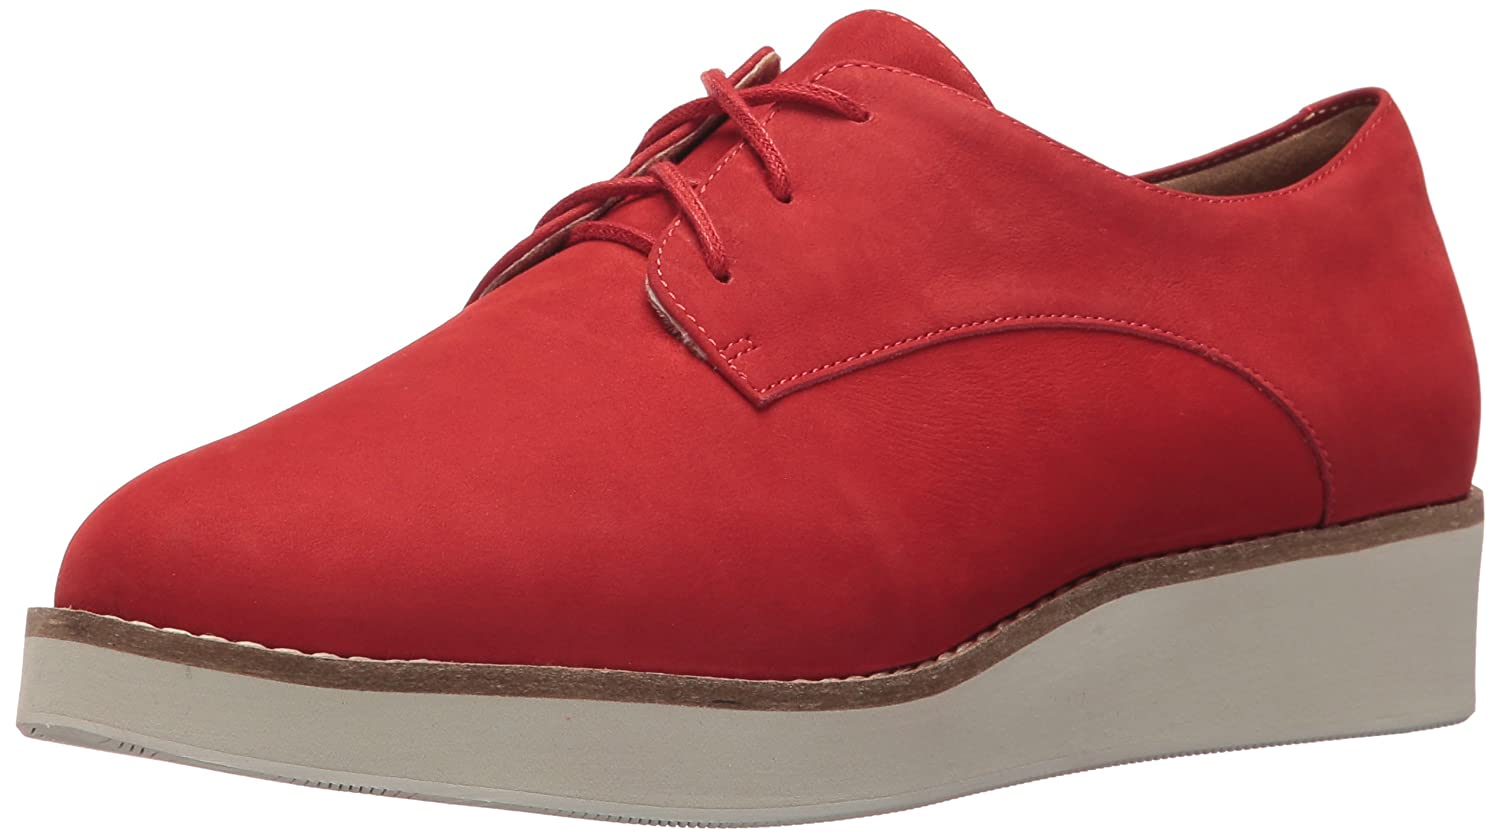 使い勝手の良い SoftWalk Womens WILLIS WILLIS Leather B(M) Fashion Sneaker レッド B073BZBCTZ 6.5 B(M) US|レッド レッド 6.5 B(M) US, 神殿神徒壇製造販売のシコクアイ:ace99a6e --- svecha37.ru